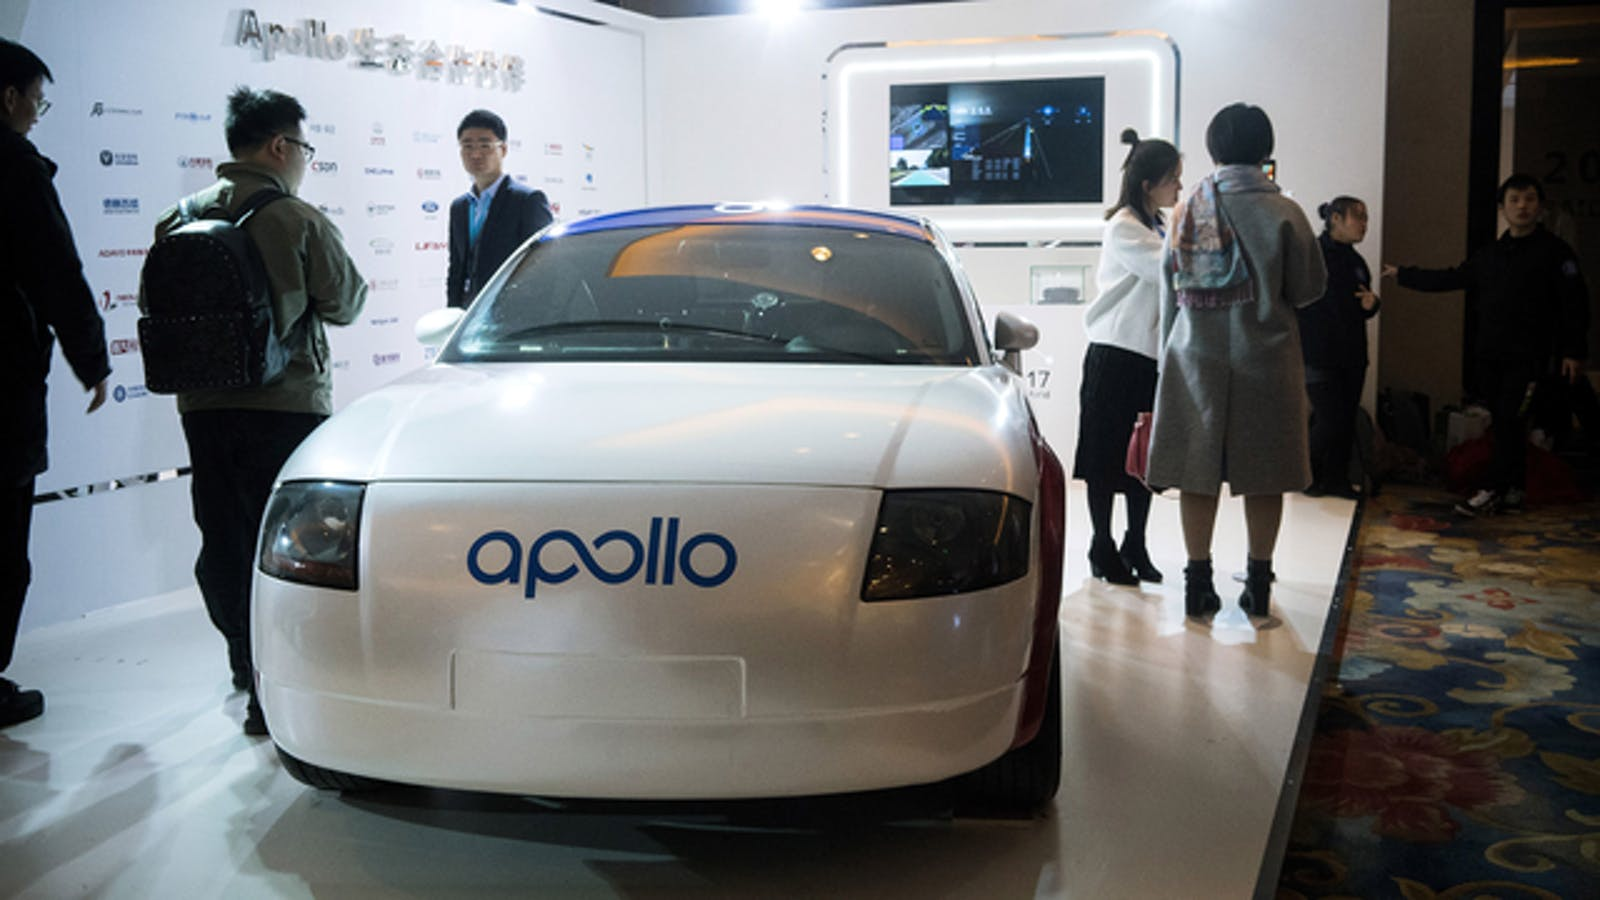 The branding for Baidu's Apollo self-driving car system is displayed on a car at the Baidu World Technology Conference in Beijing, China. Photo by Bloomberg.